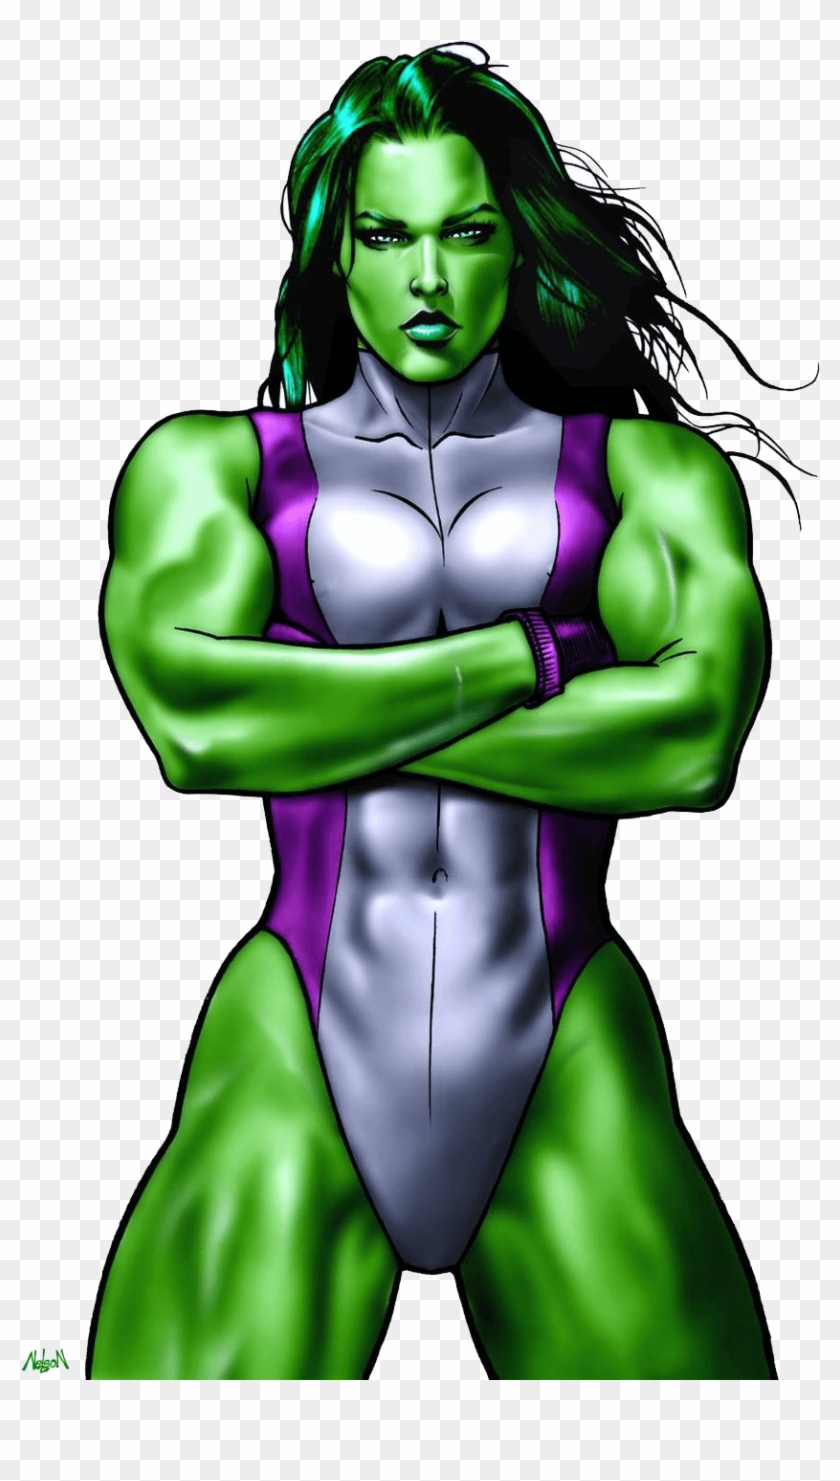 Free Png She Hulk Png Png Images Transparent.